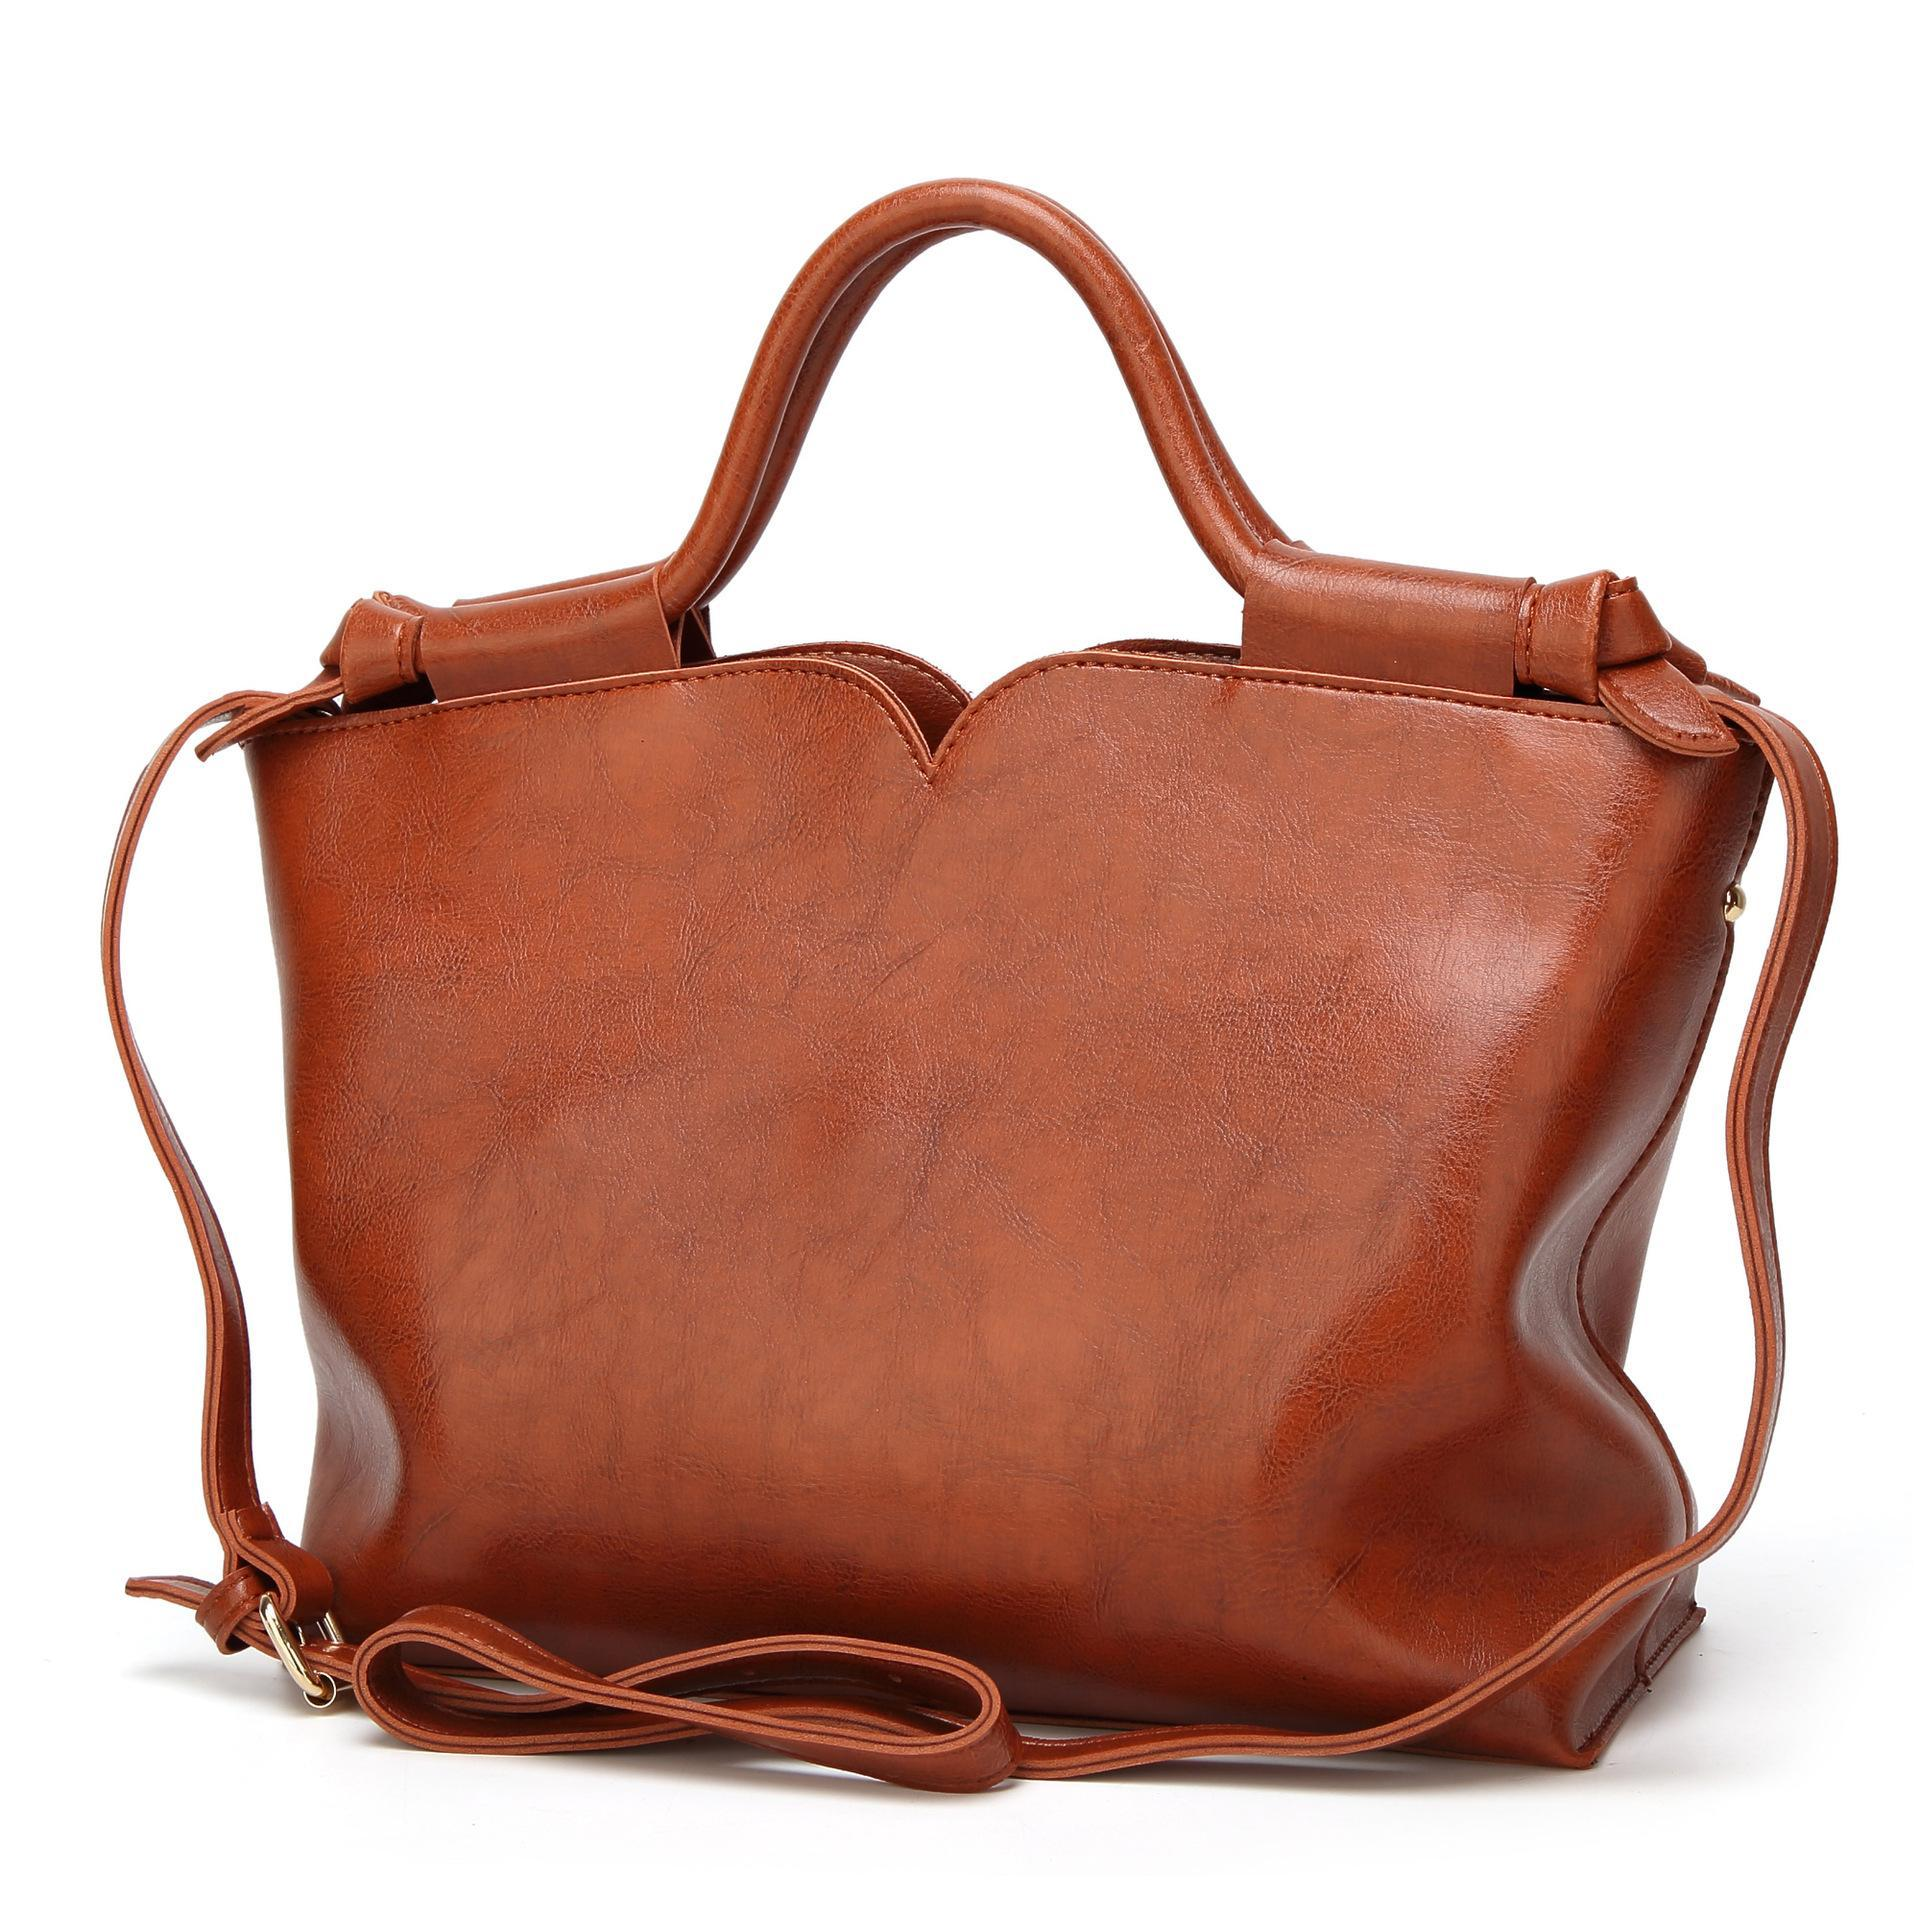 18ab32f36ee Product details of New women's bag European and American fashion handbags  wild single shoulder diagonal package oil wax leather retro ladies bag